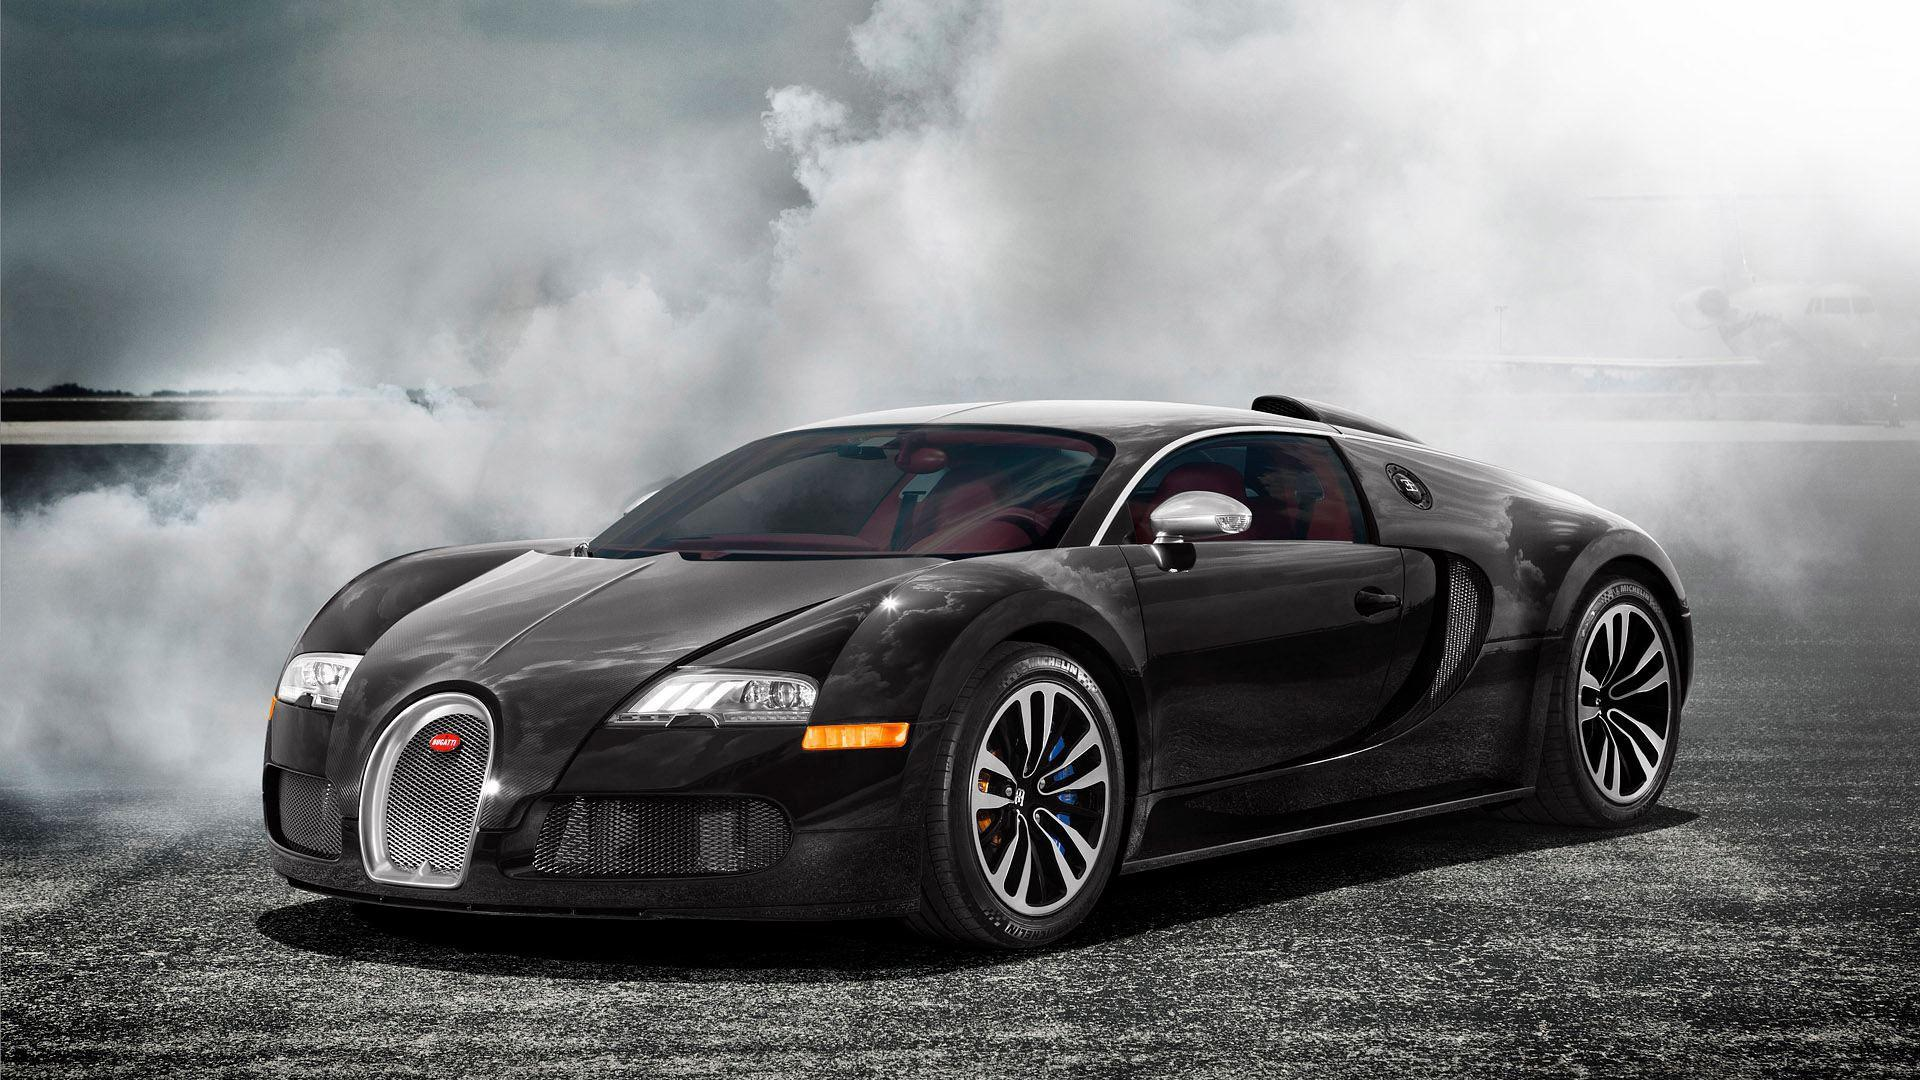 Bugatti Veyron 2013 Sports Cars HD Wallpaper Bugatti Veyron 2013 1920x1080